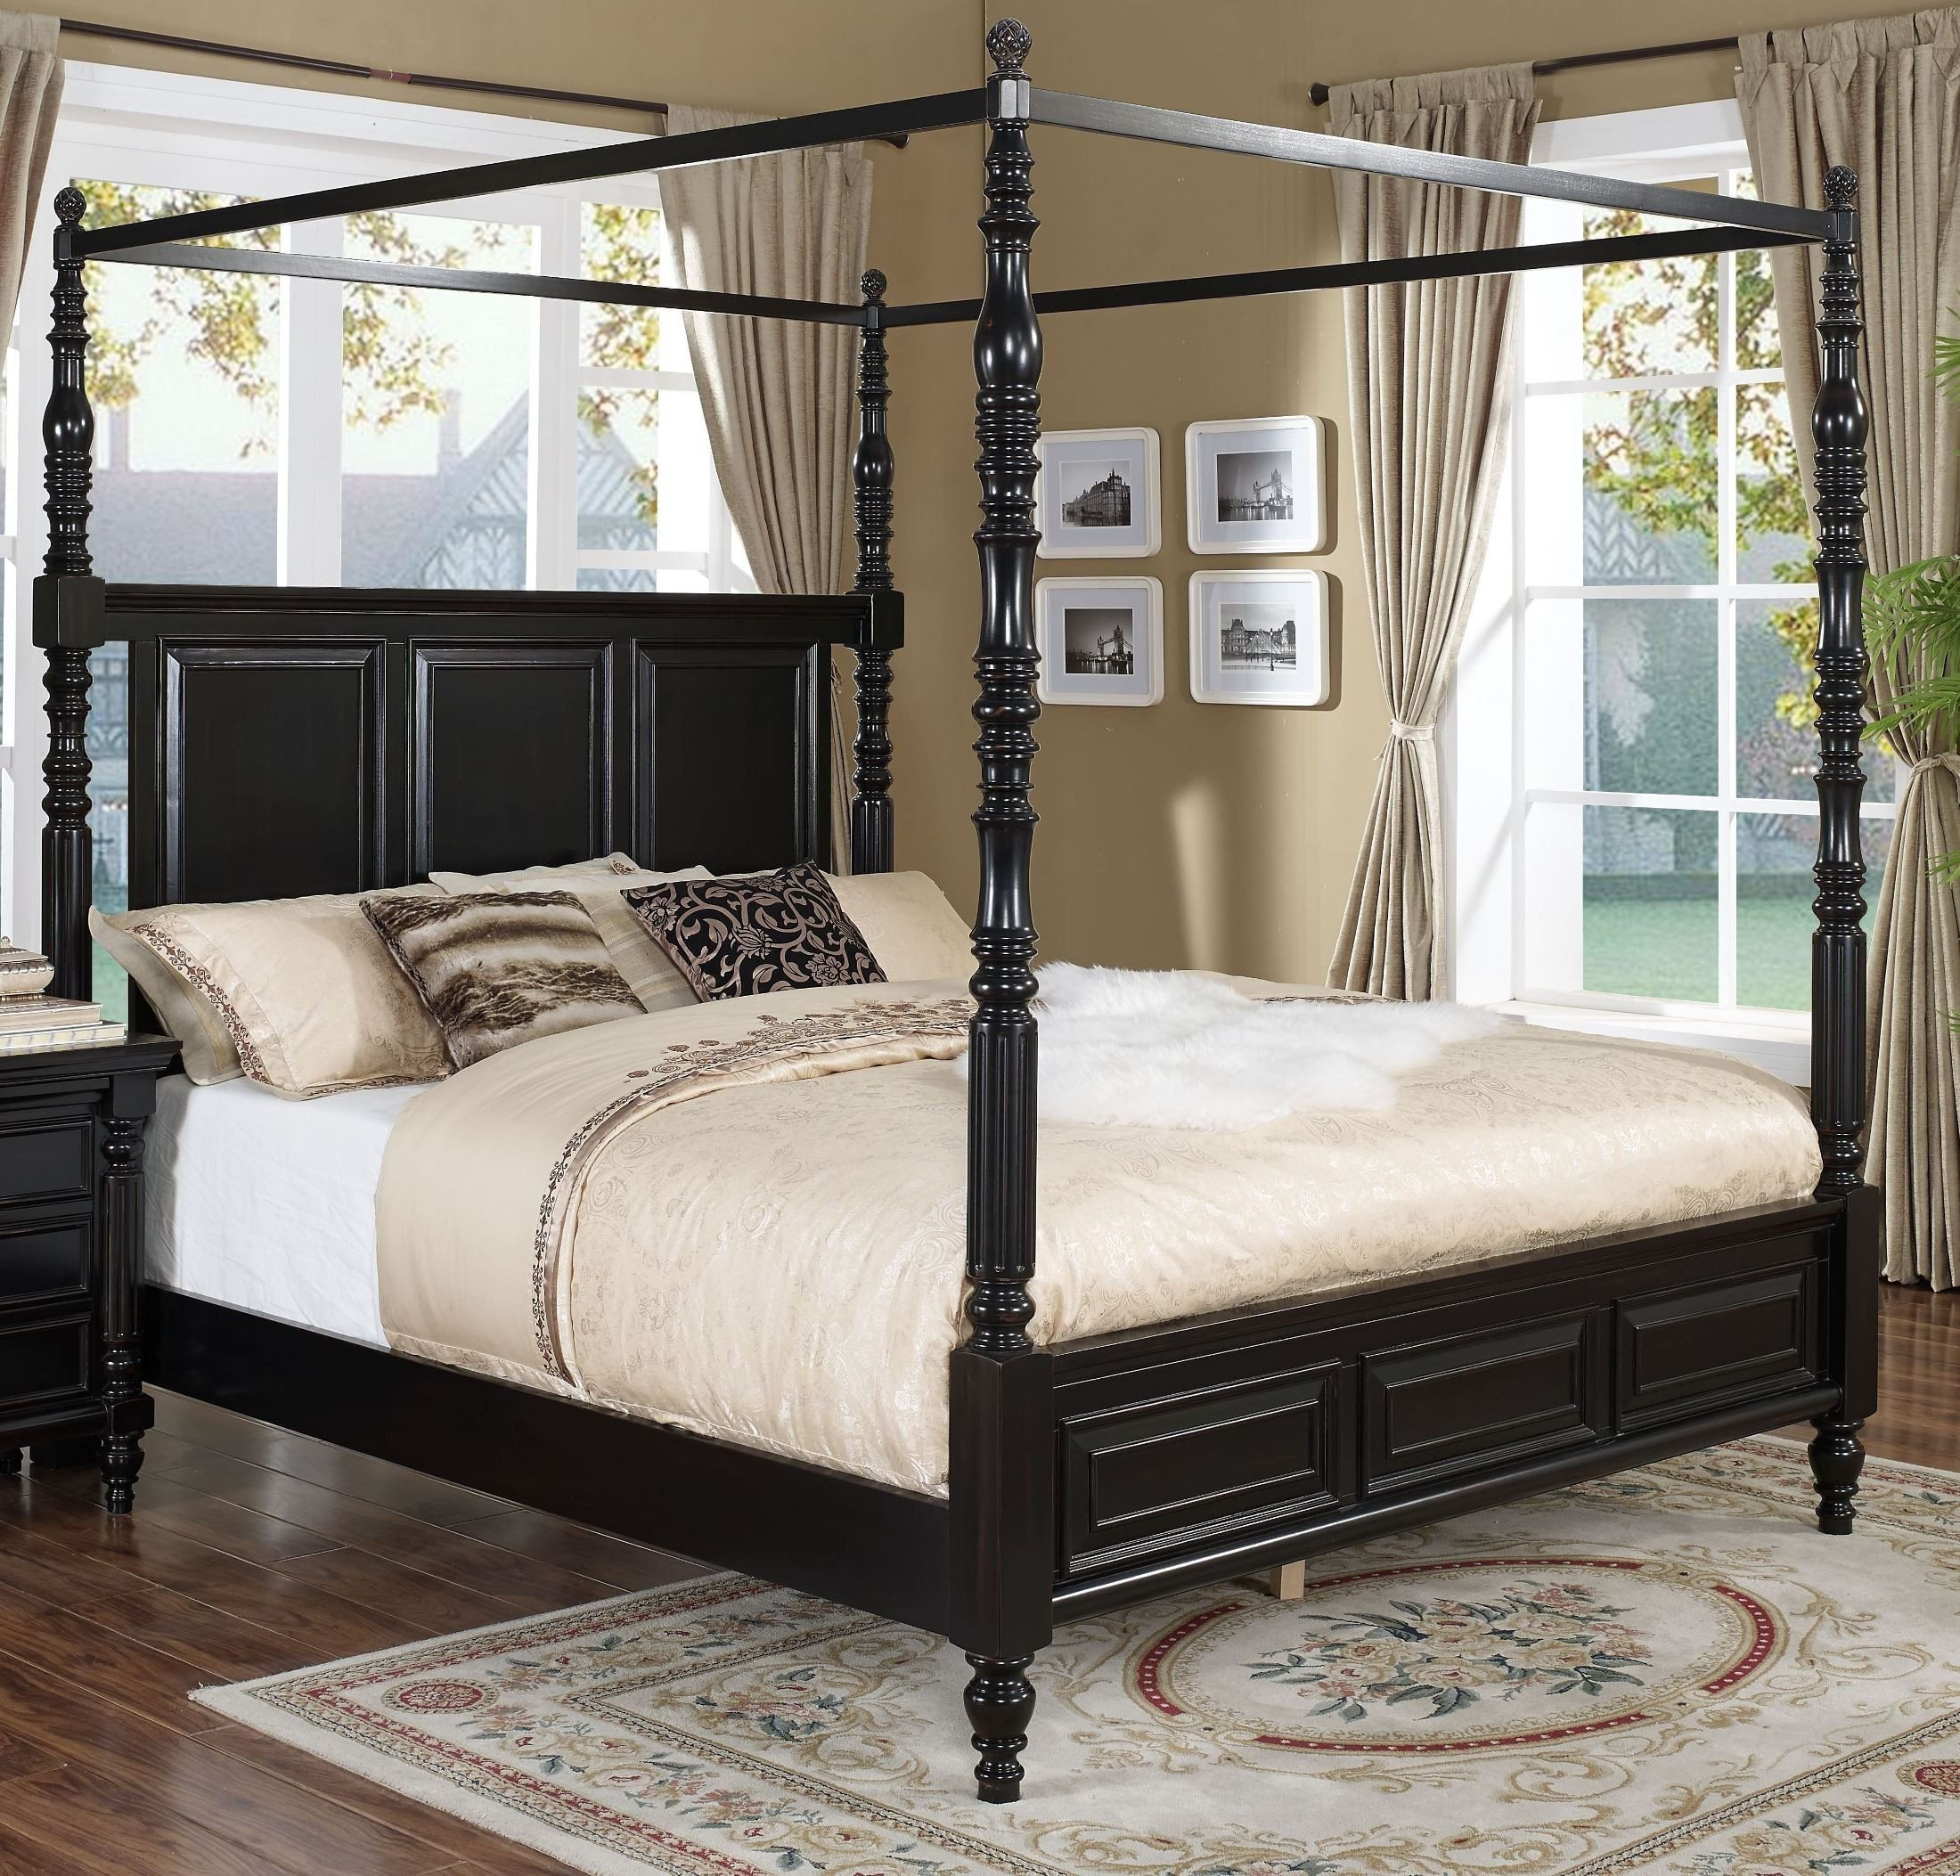 King Size Canopy Bedroom Set Lovely Martinique Rubbed Black King Poster Canopy Bed with Drapes